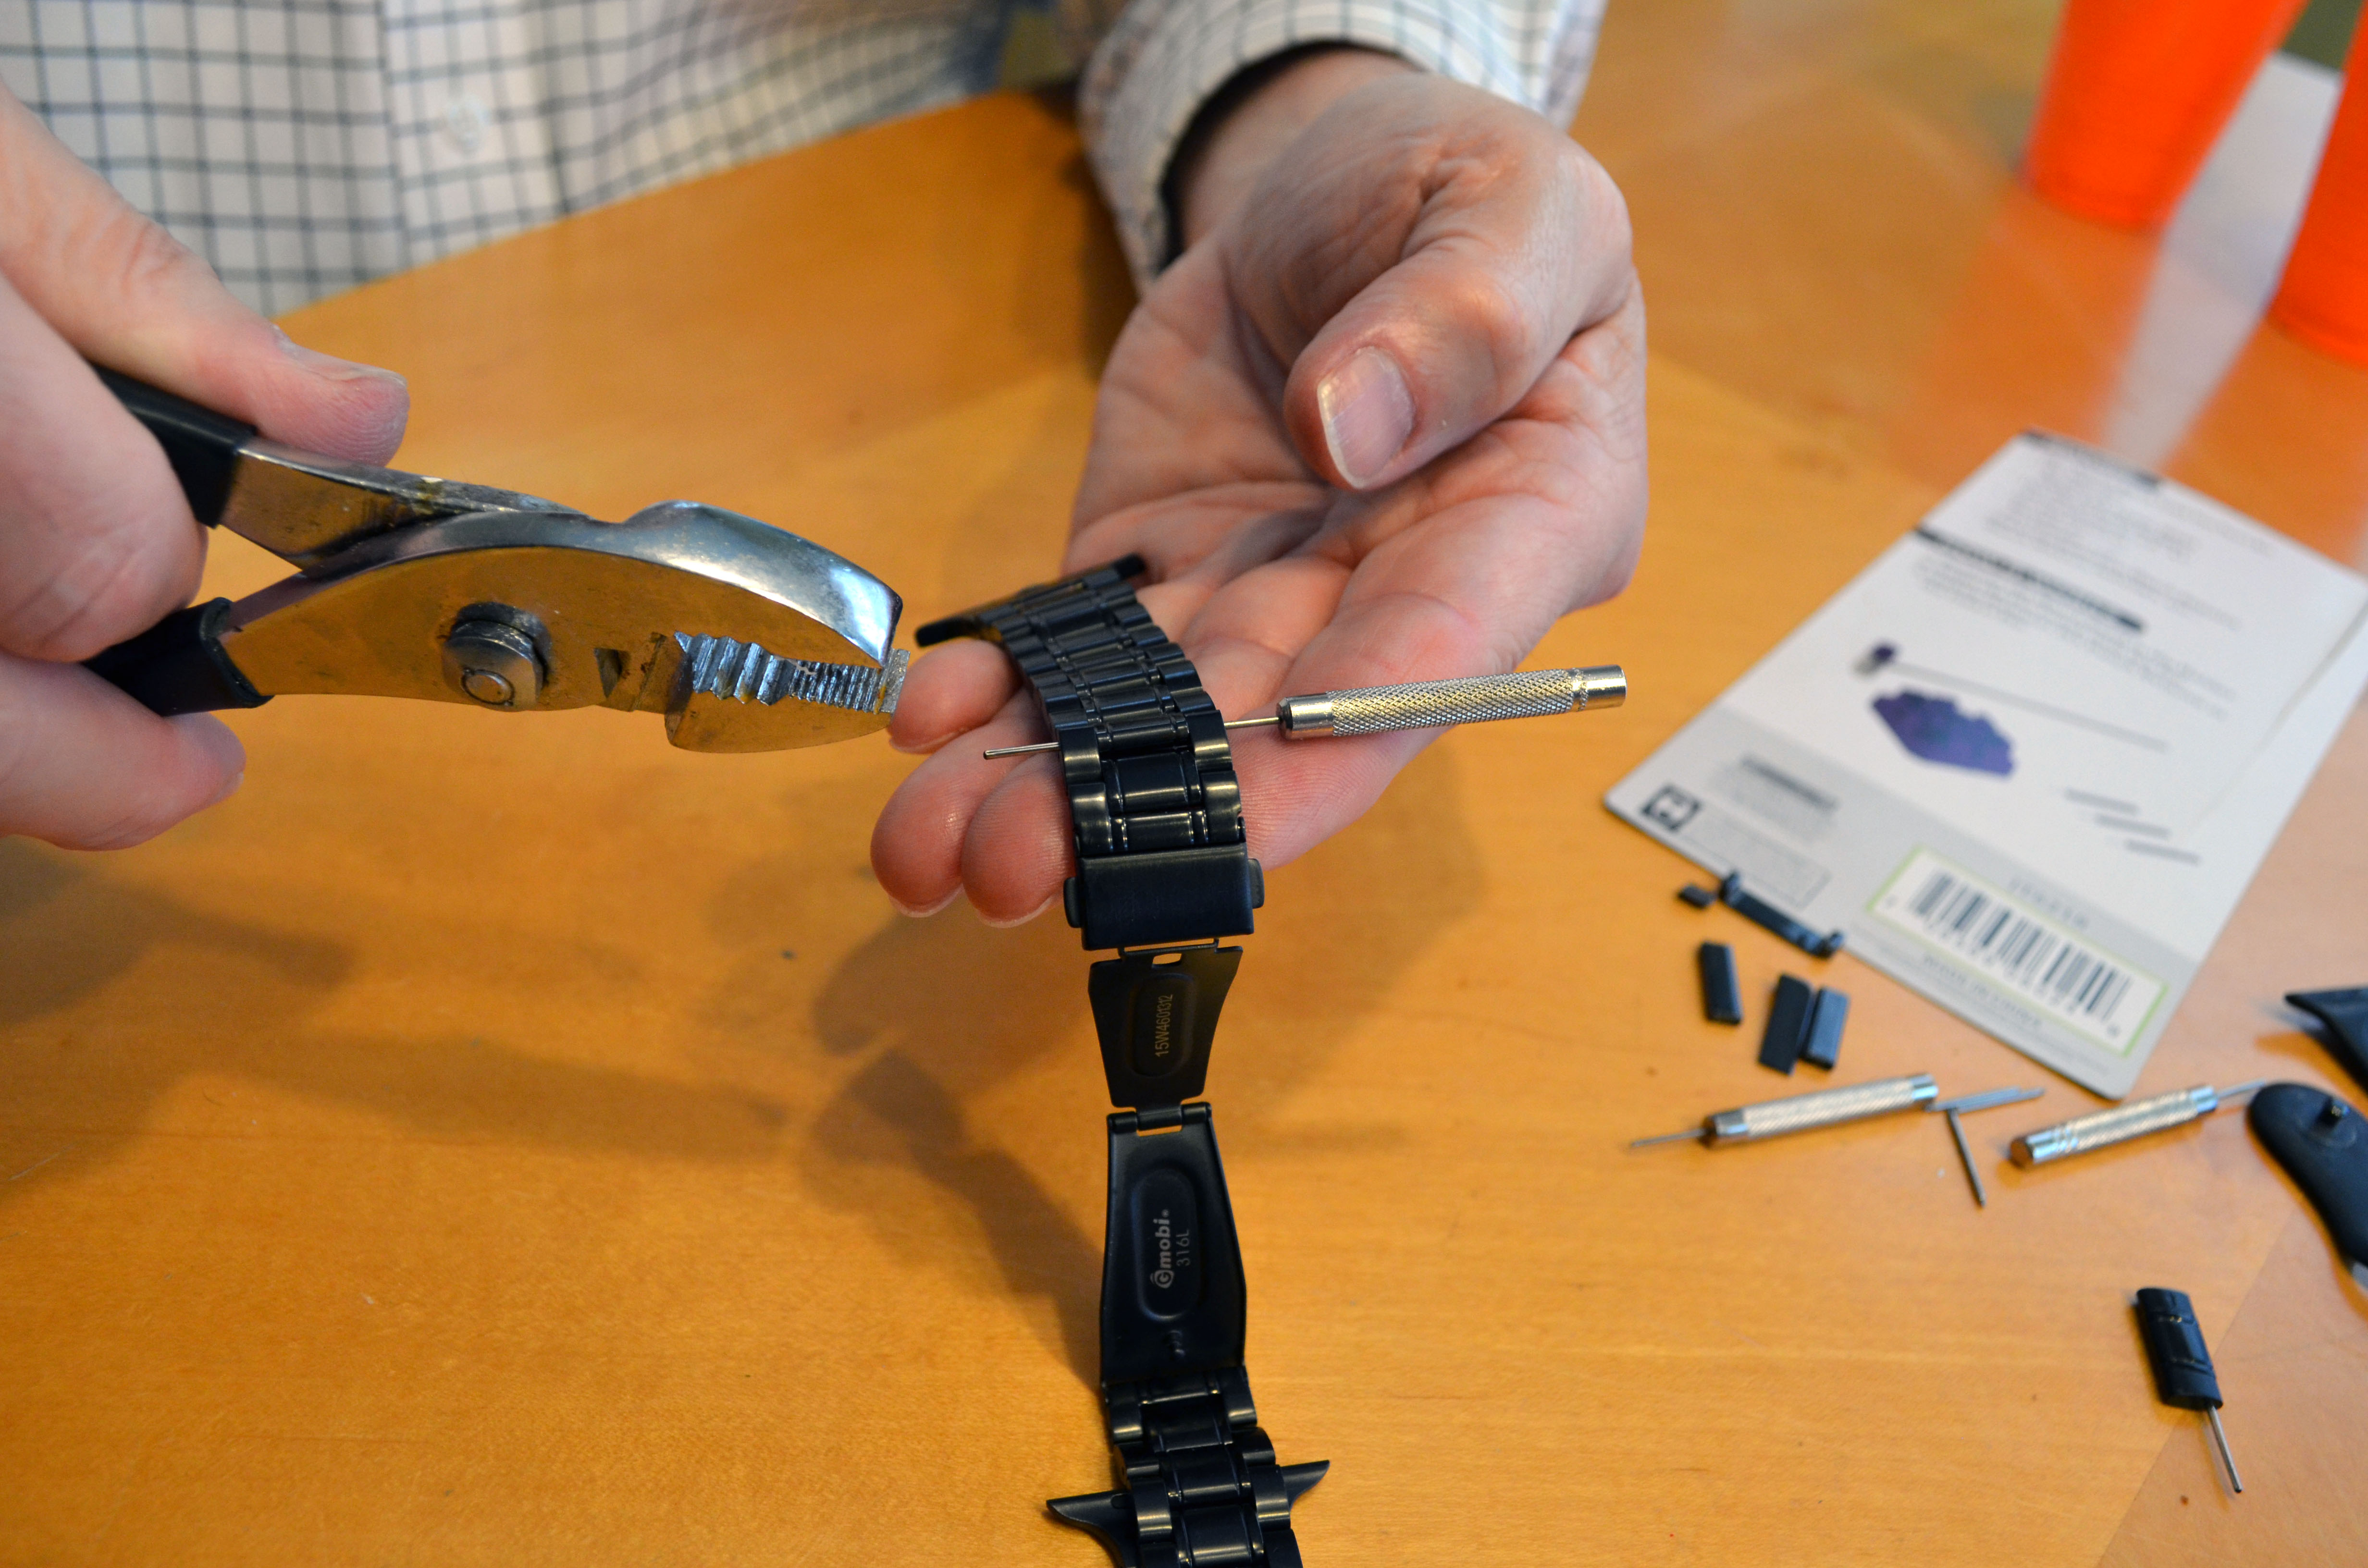 We needed pliers to get the pins out of one of the watch bands.